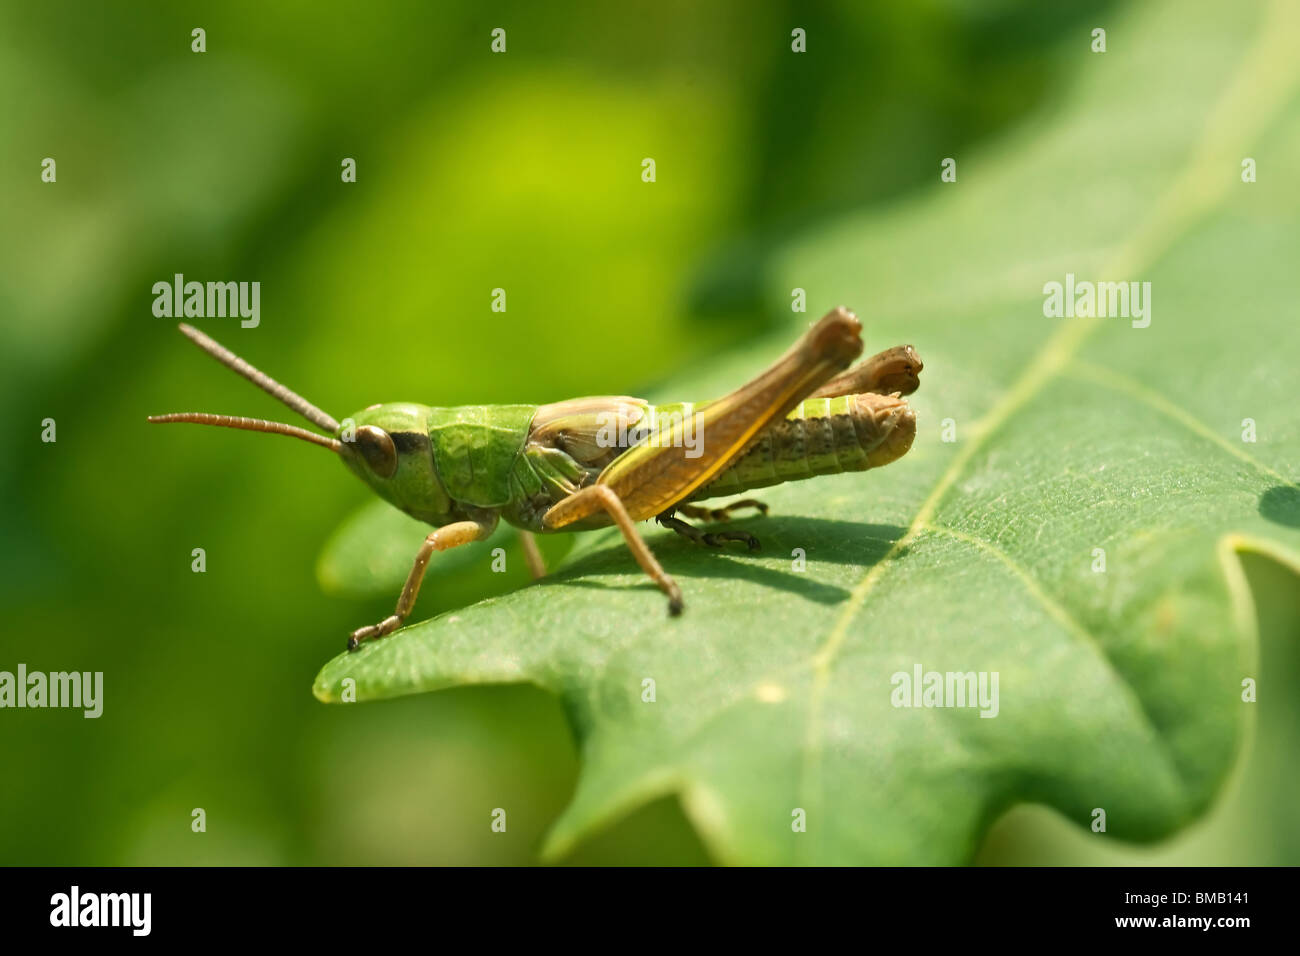 grasshopper on the grass, extreme closeup and details, macro - Stock Image